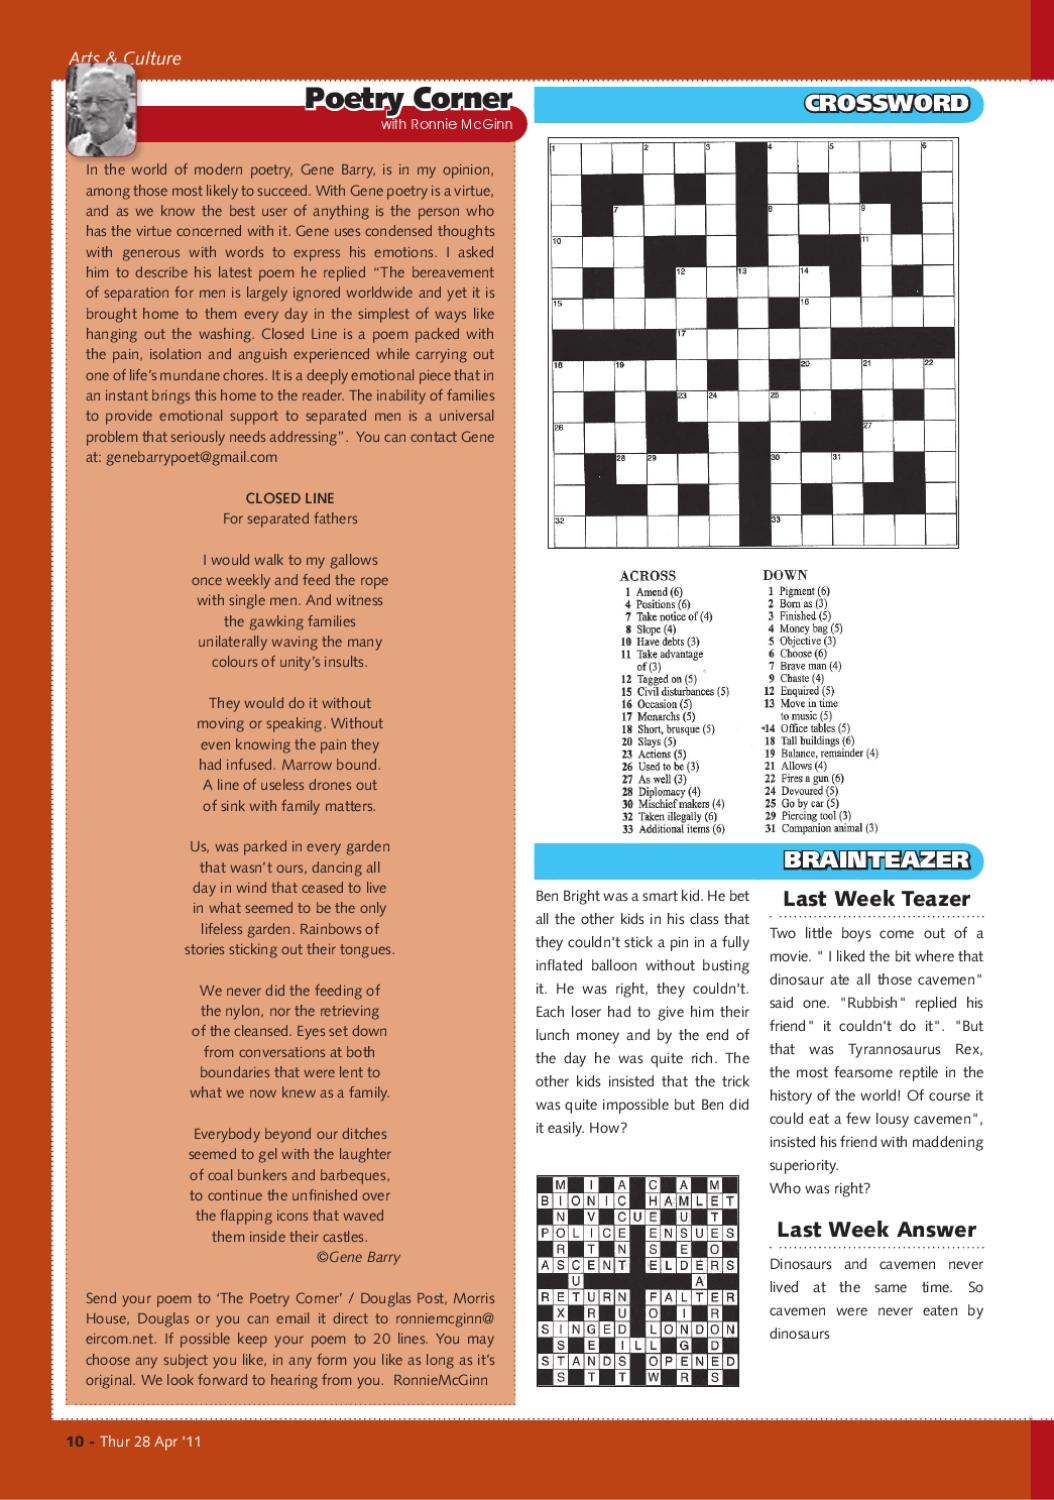 Page 10 of magazine